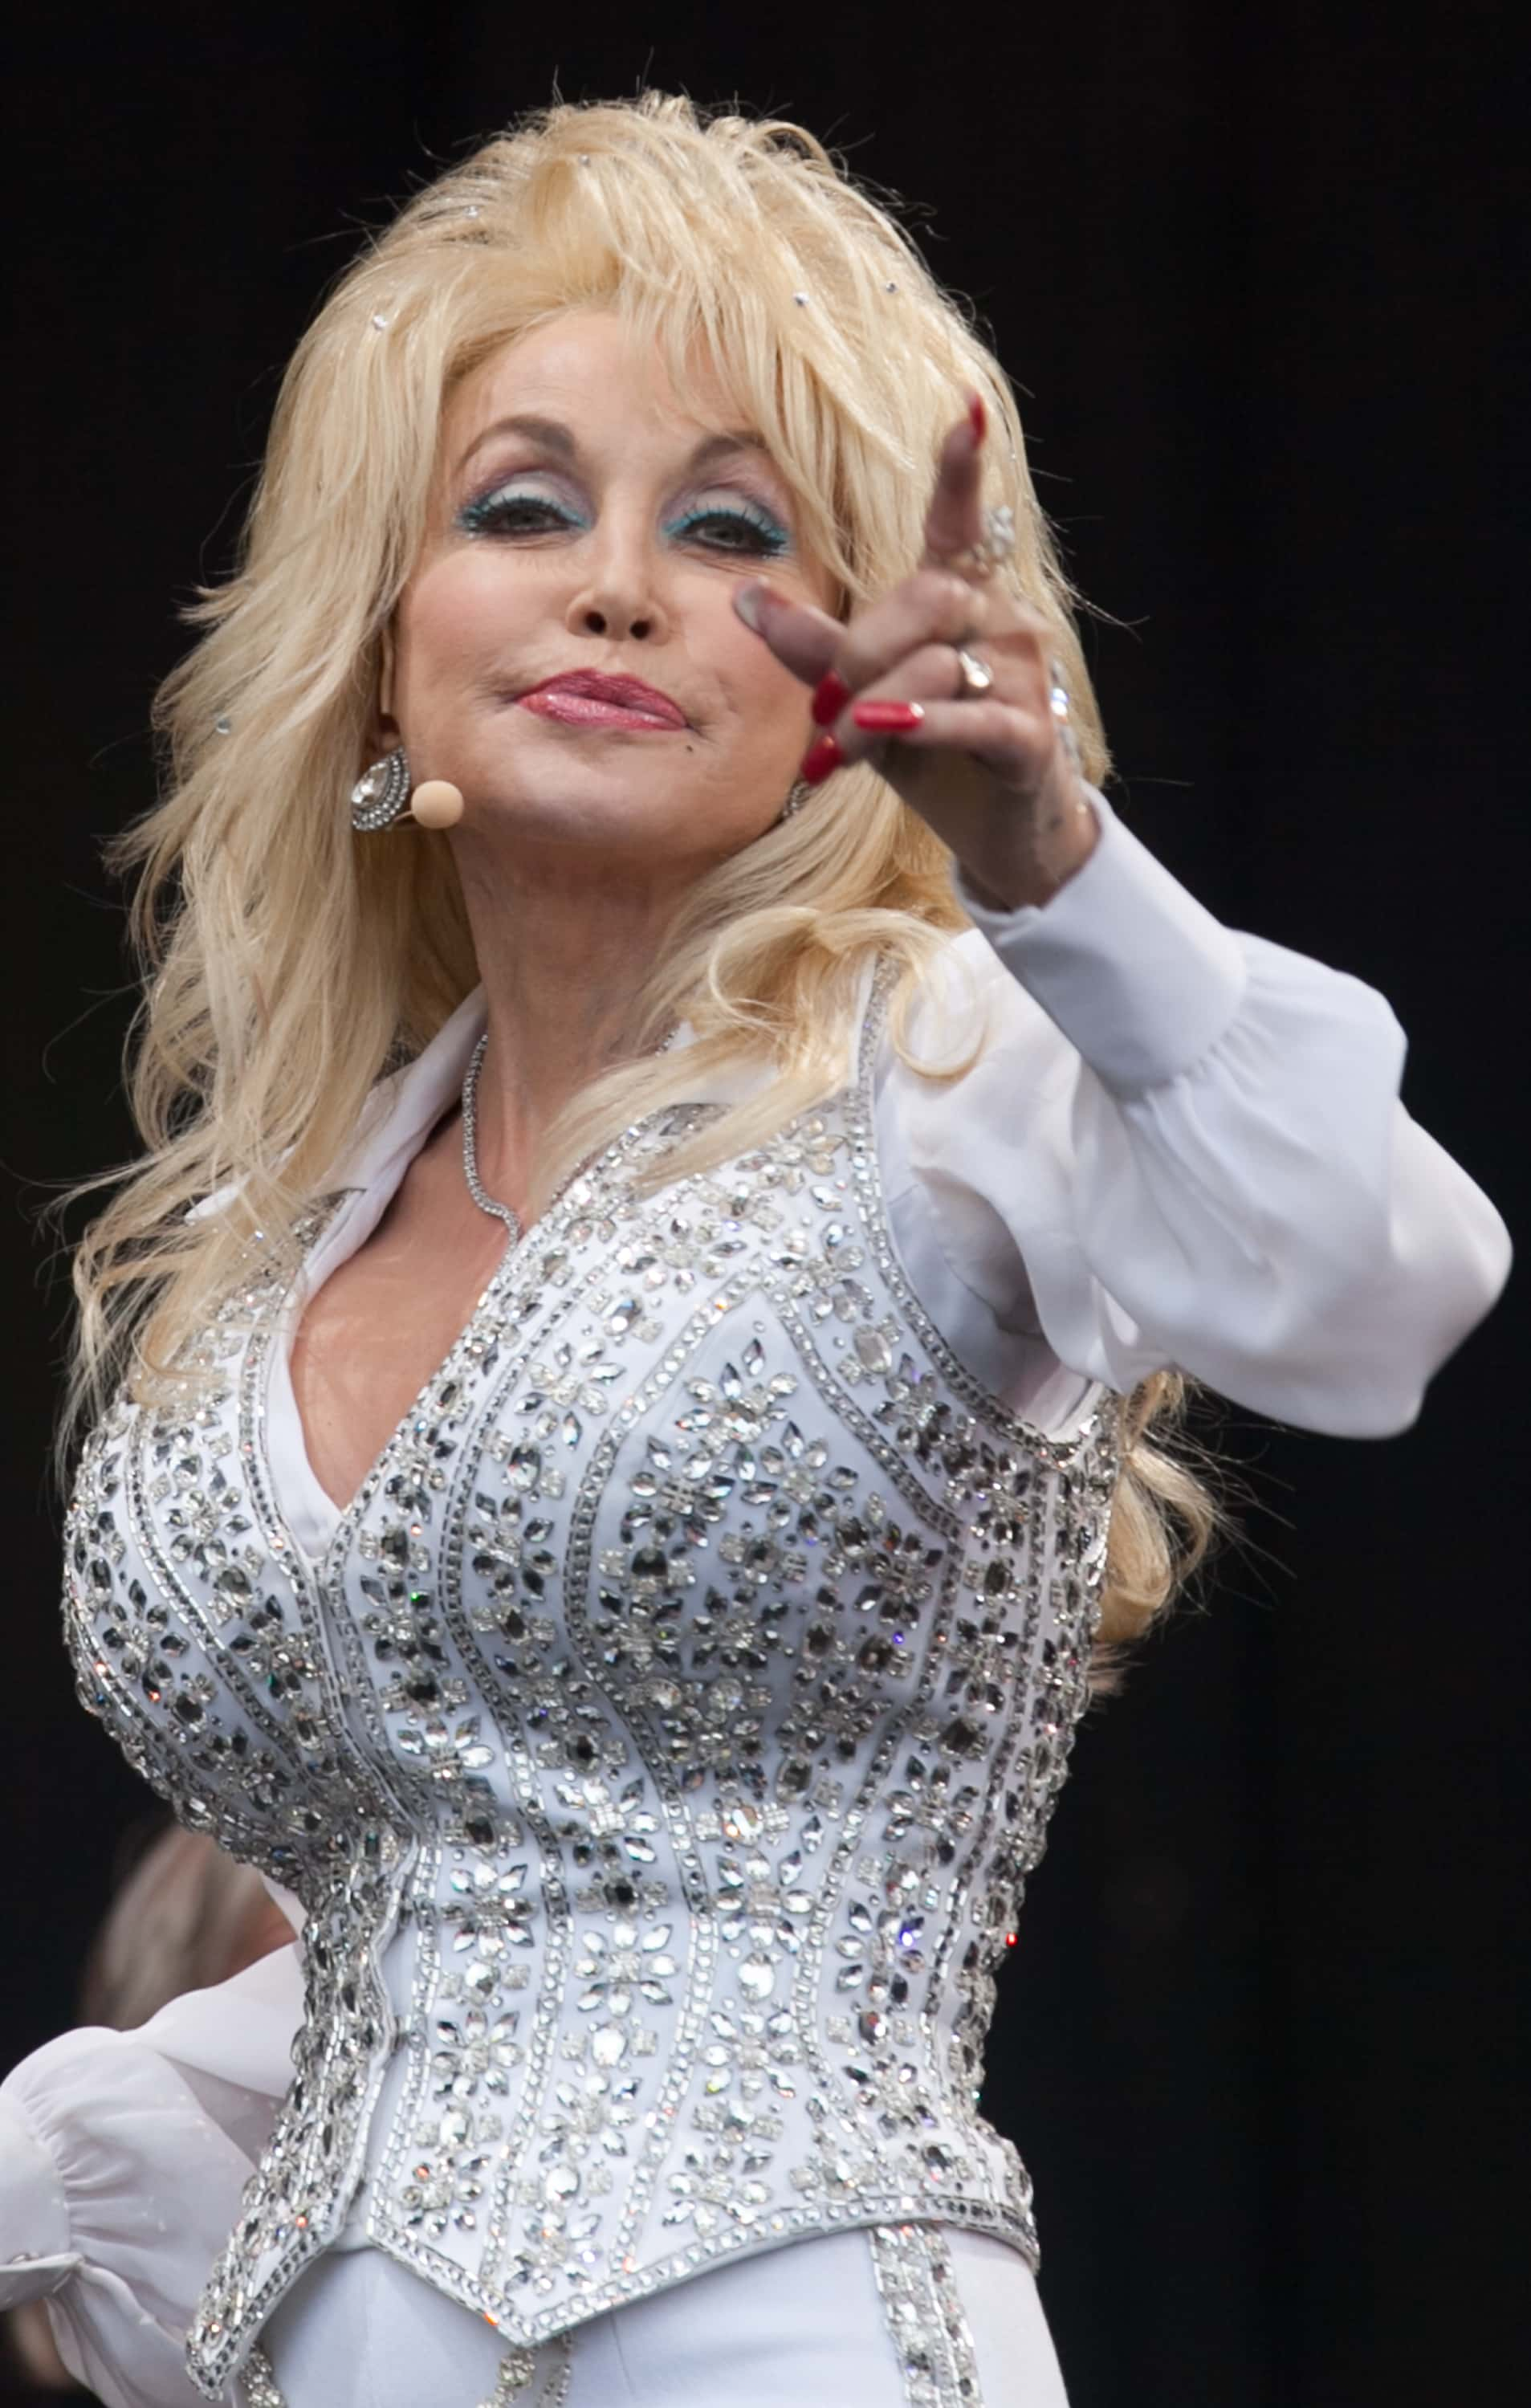 Does Dolly Parton Have Fake Boobs : dolly, parton, boobs, Dolly, Parton, Breast, Implants?, Here's, Singer, Virginia, Twins, 'killing', After, Surgery, MEAWW